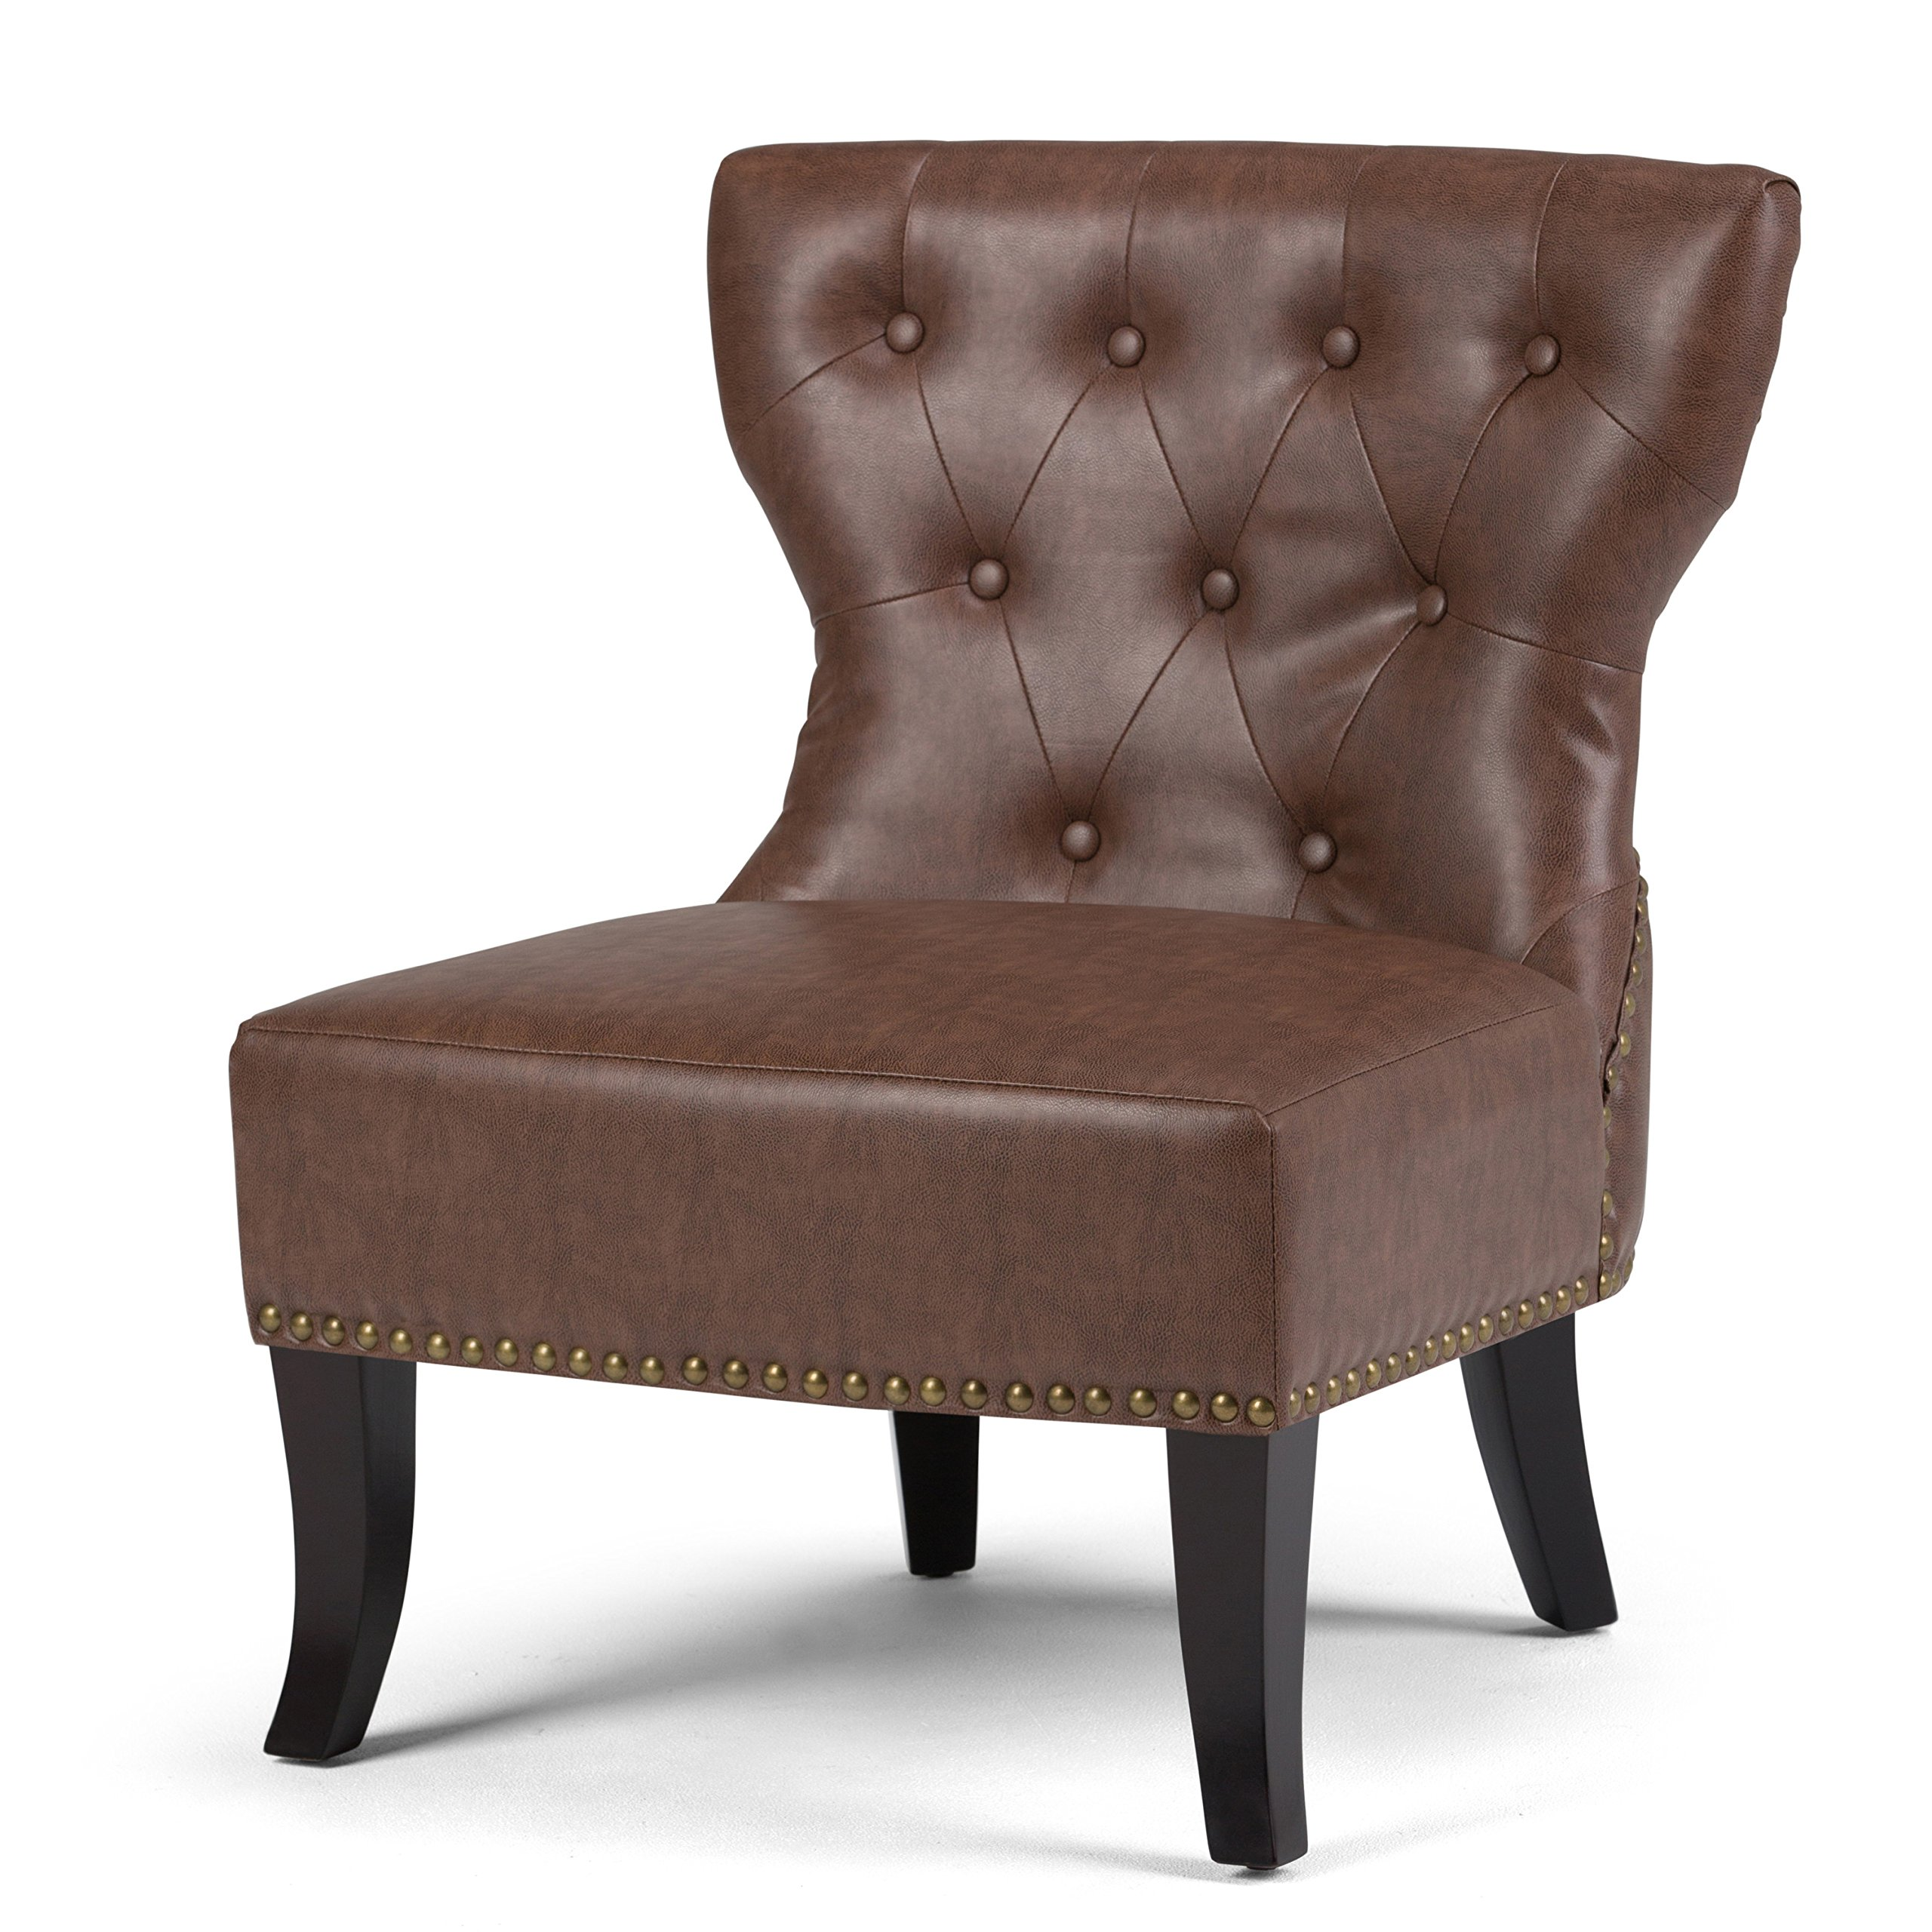 Simpli Home Kitchener Tufted Accent Chair, Rustic Brown